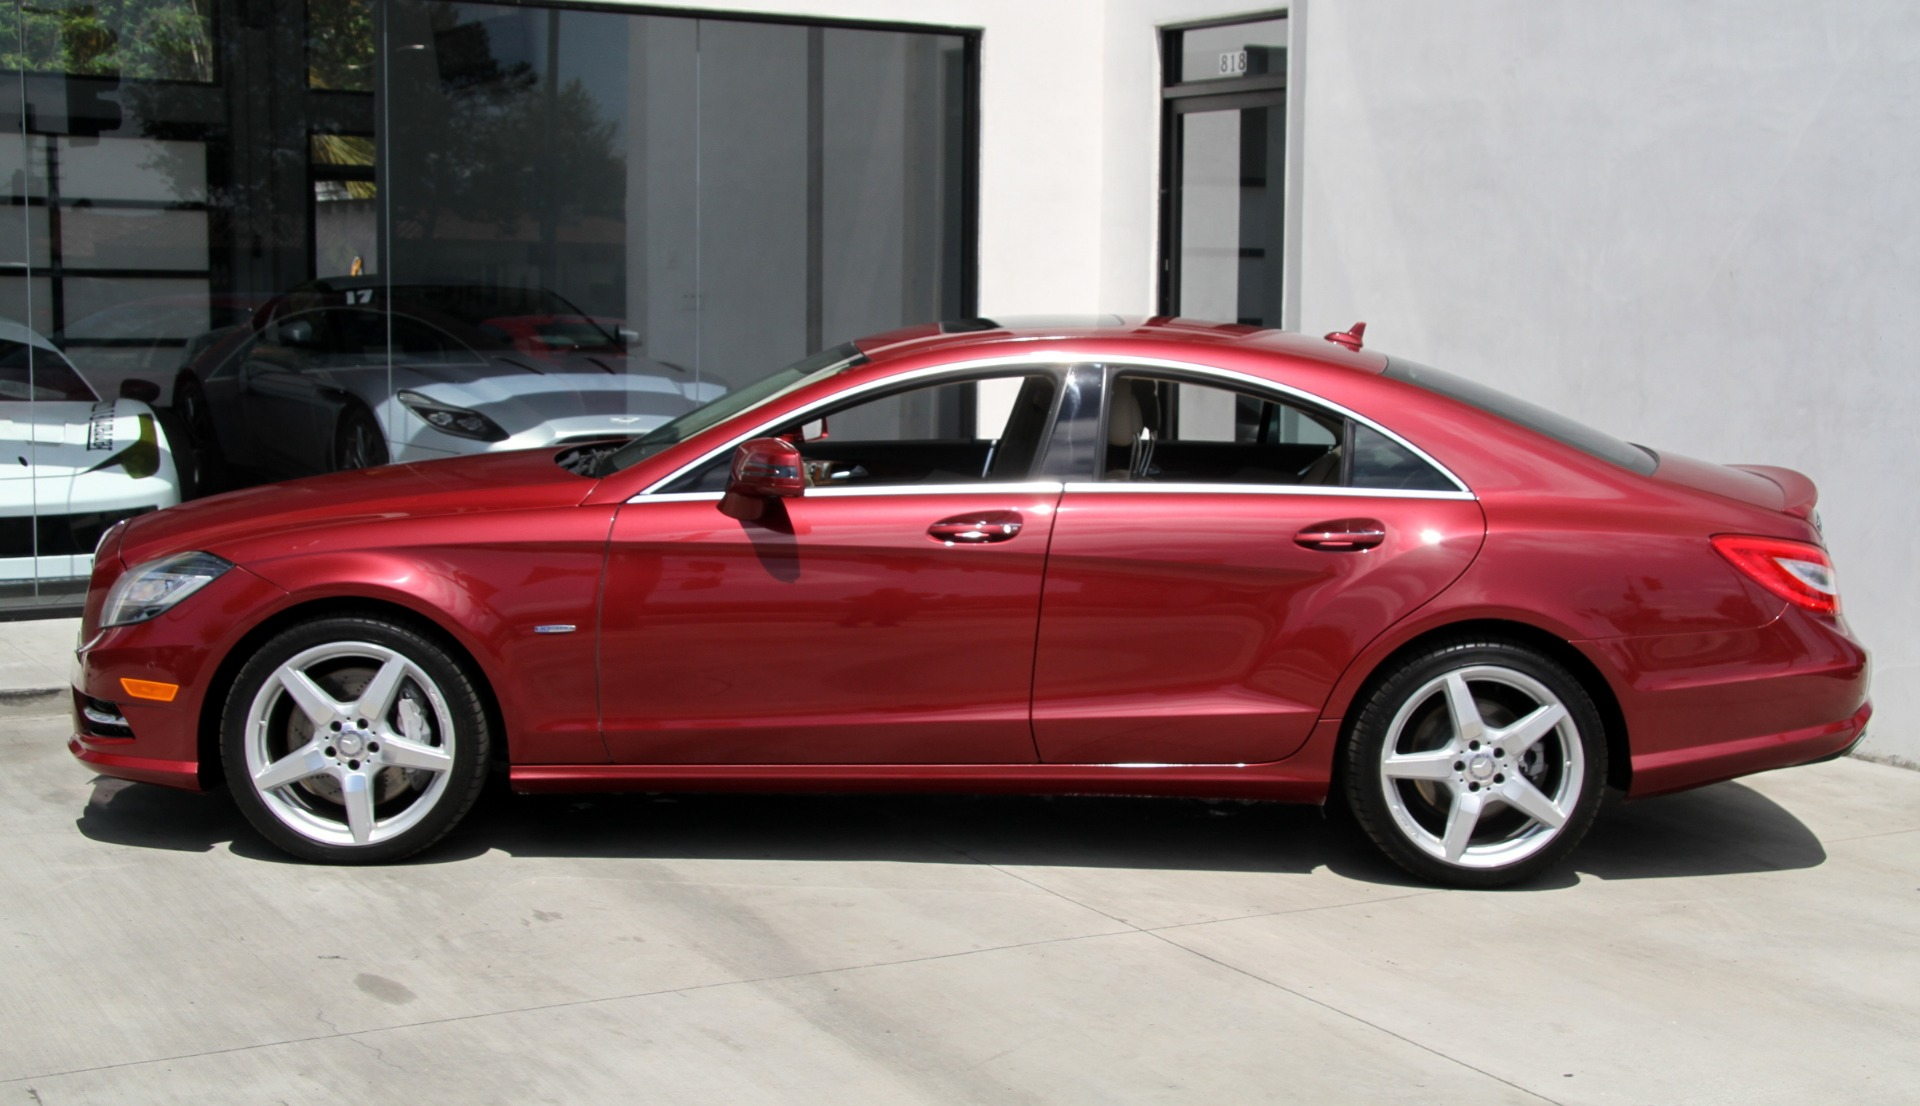 2012 Mercedes Benz Cls Cls 550 Stock 6252 For Sale Near